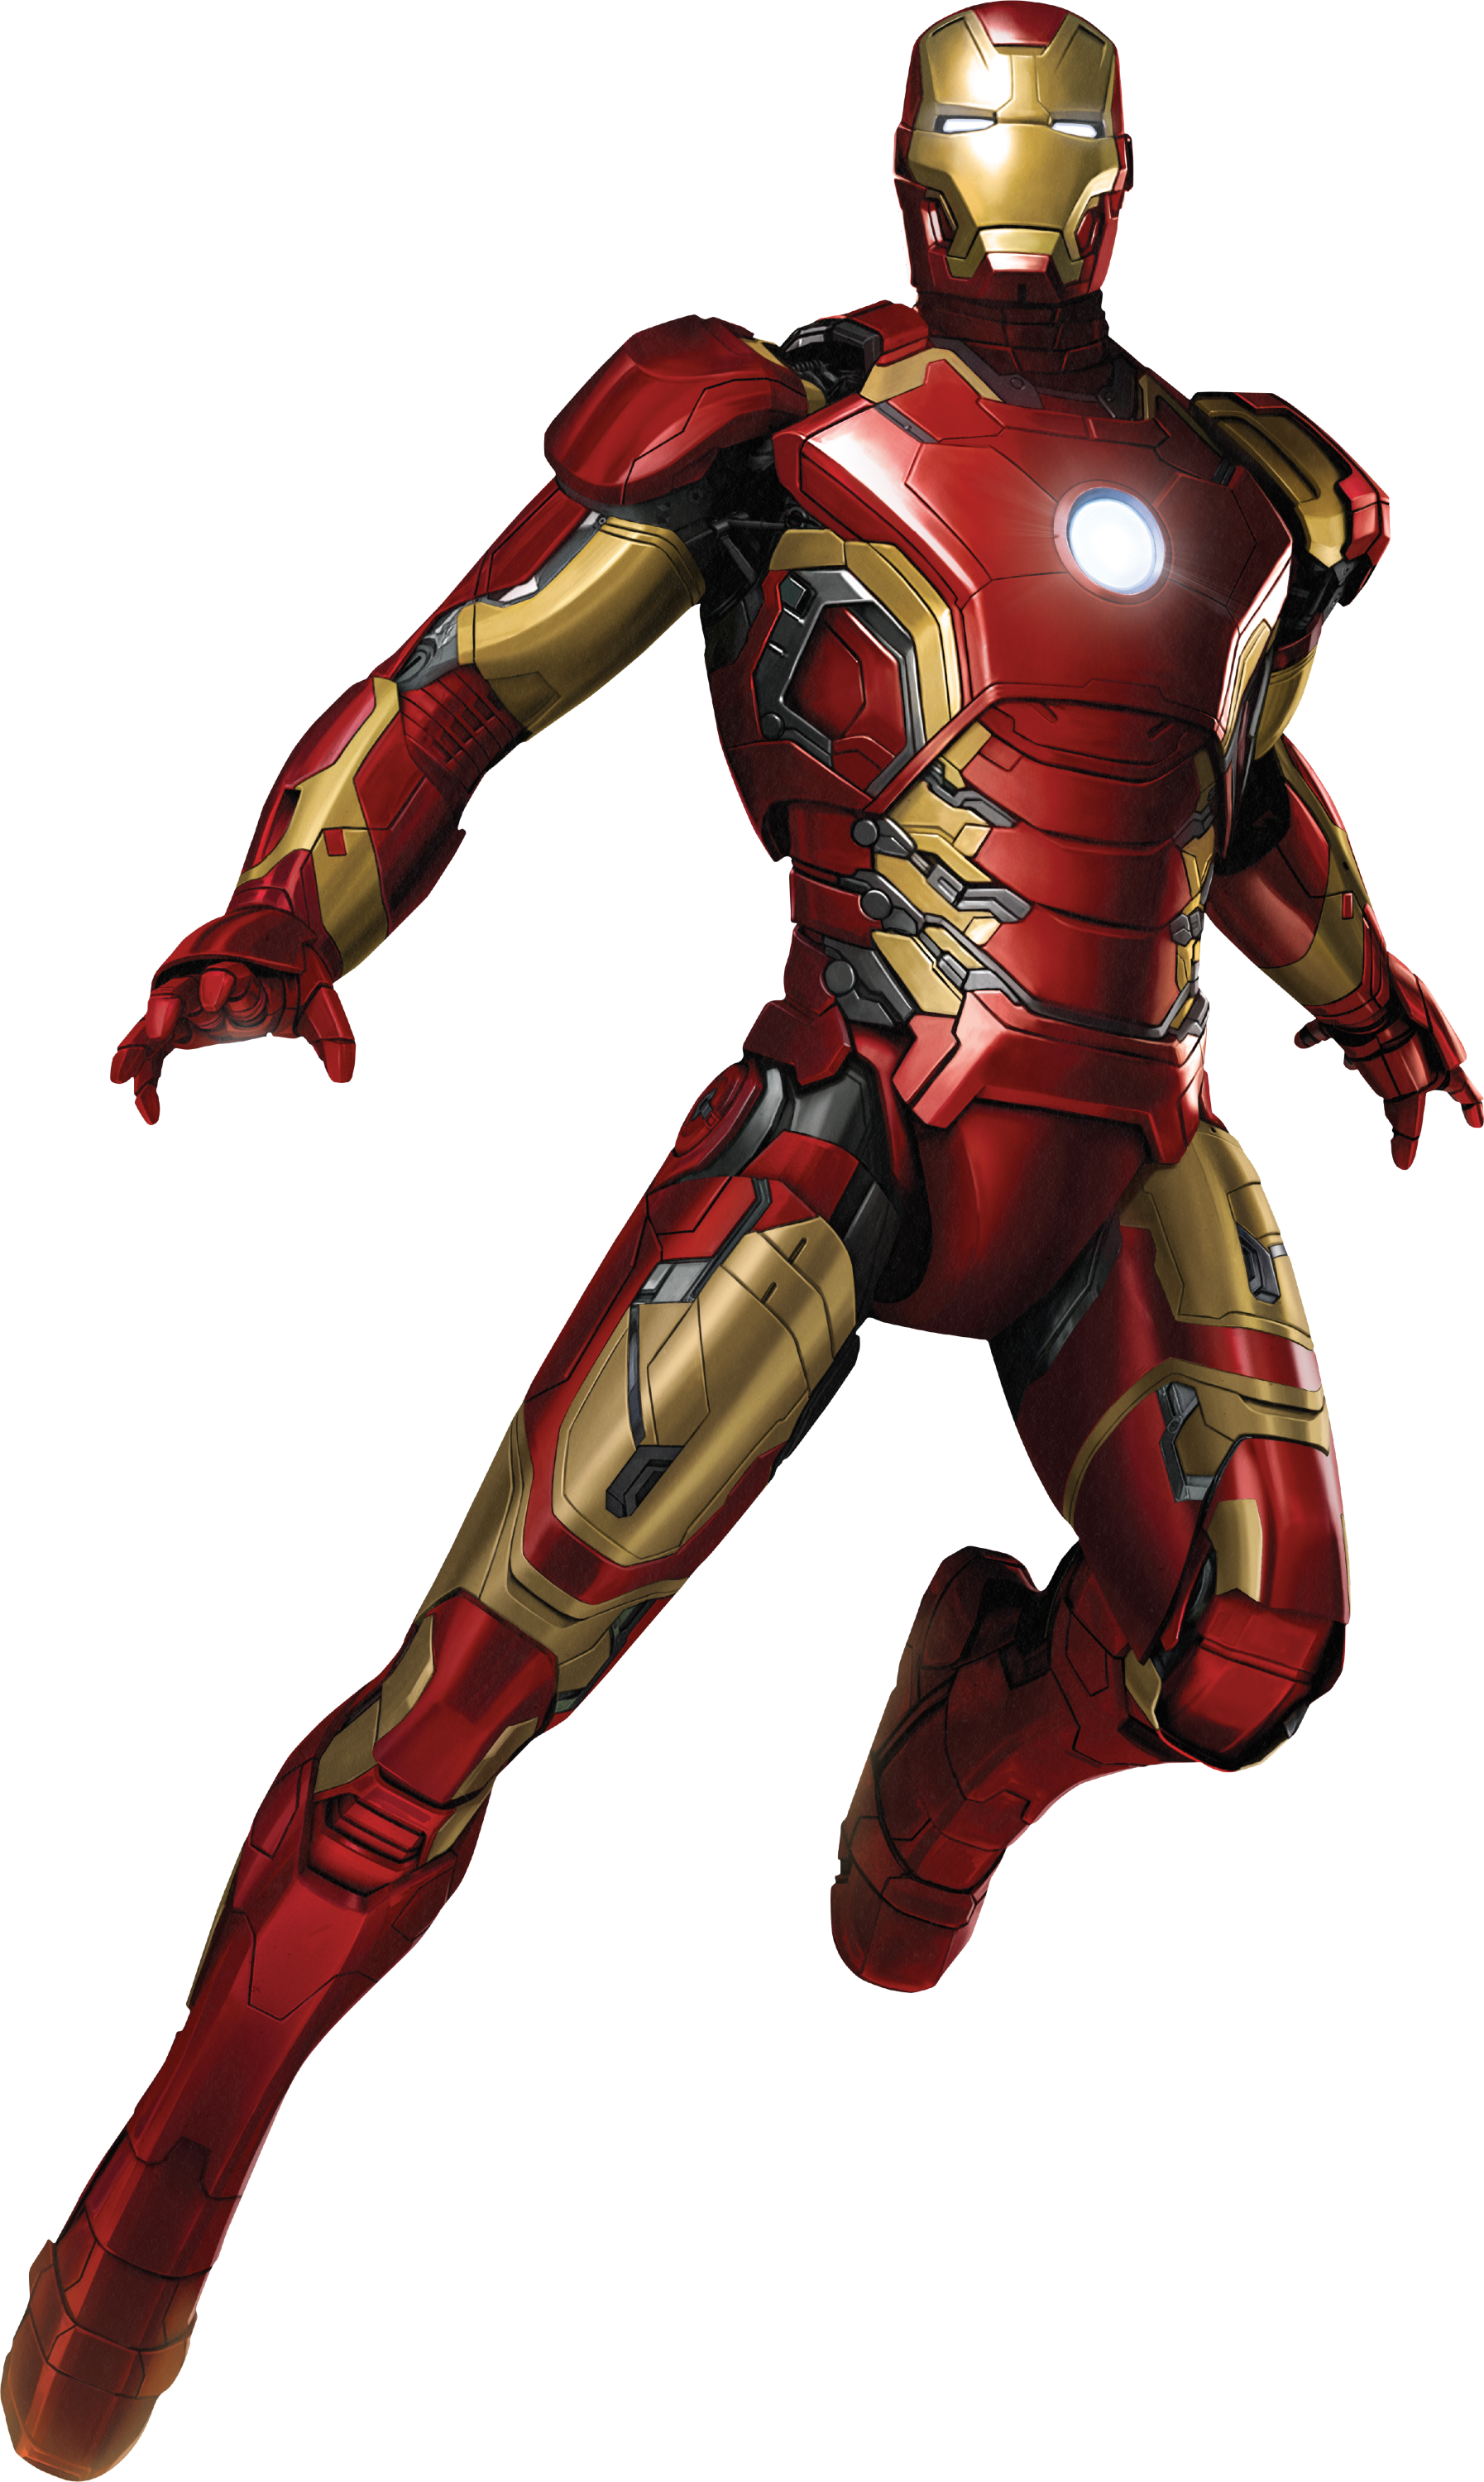 iron man disney wiki fandom powered by wikia. Black Bedroom Furniture Sets. Home Design Ideas